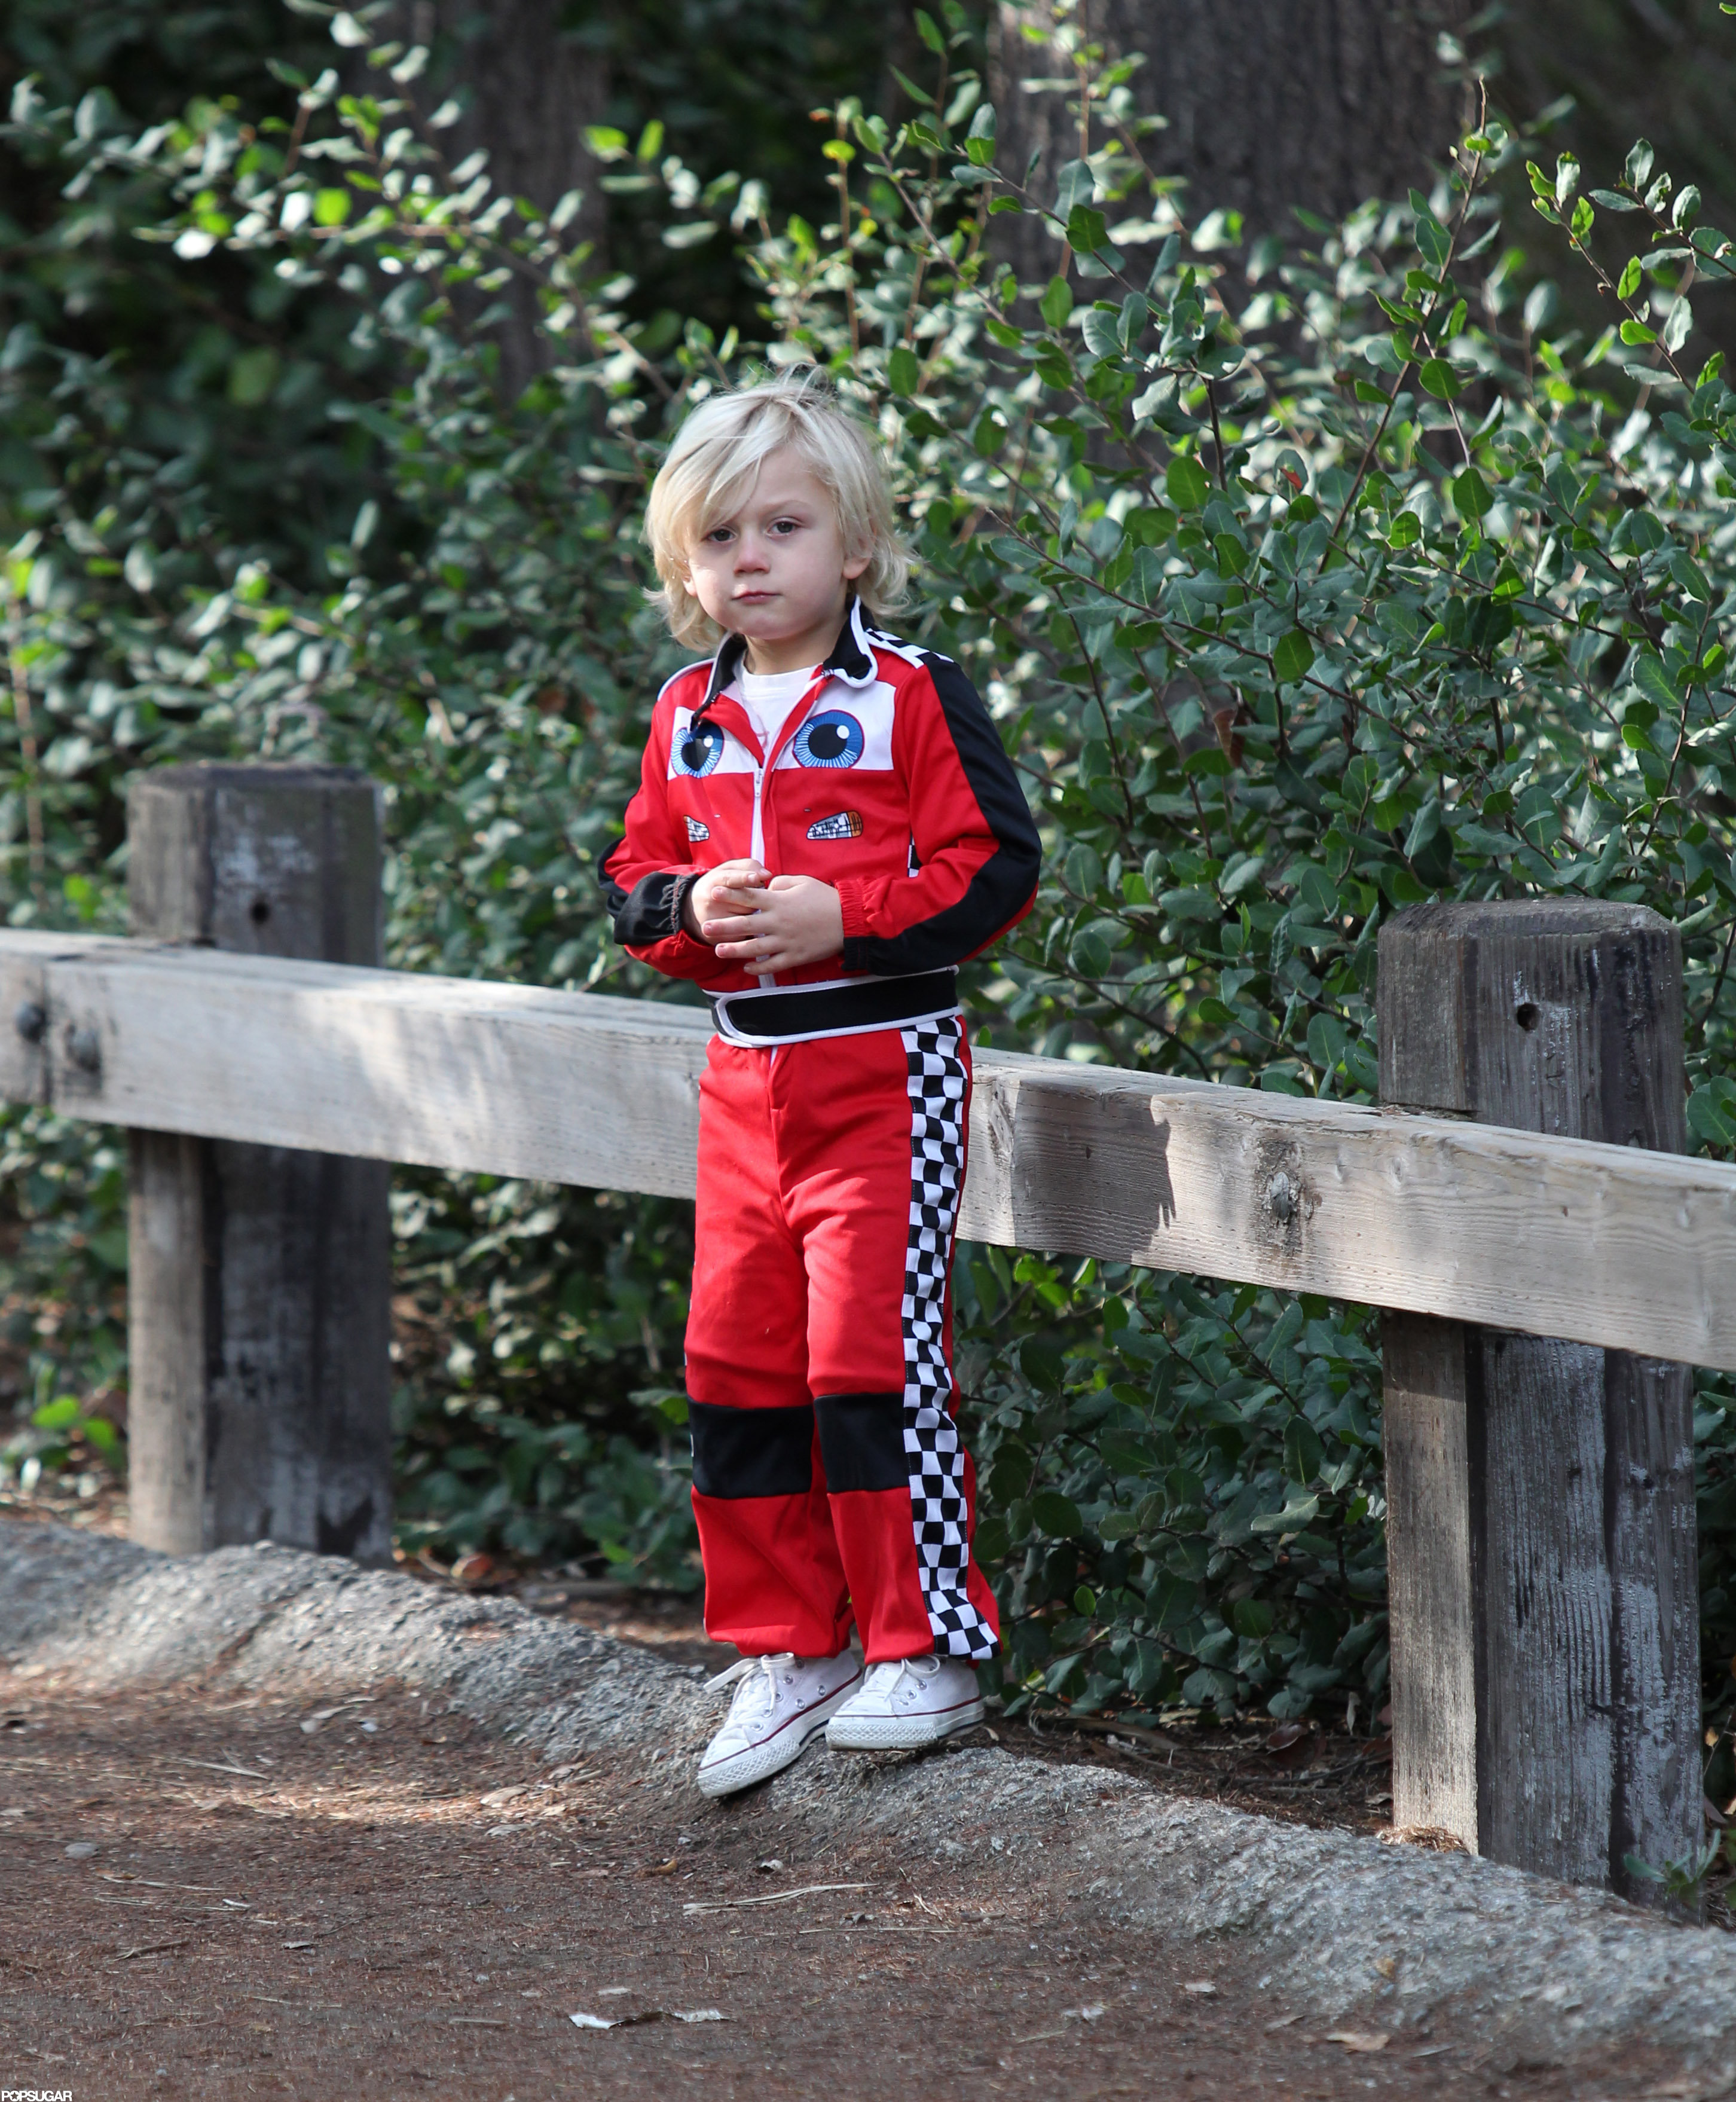 Zuma Rossdale wore a race car driver outfit.